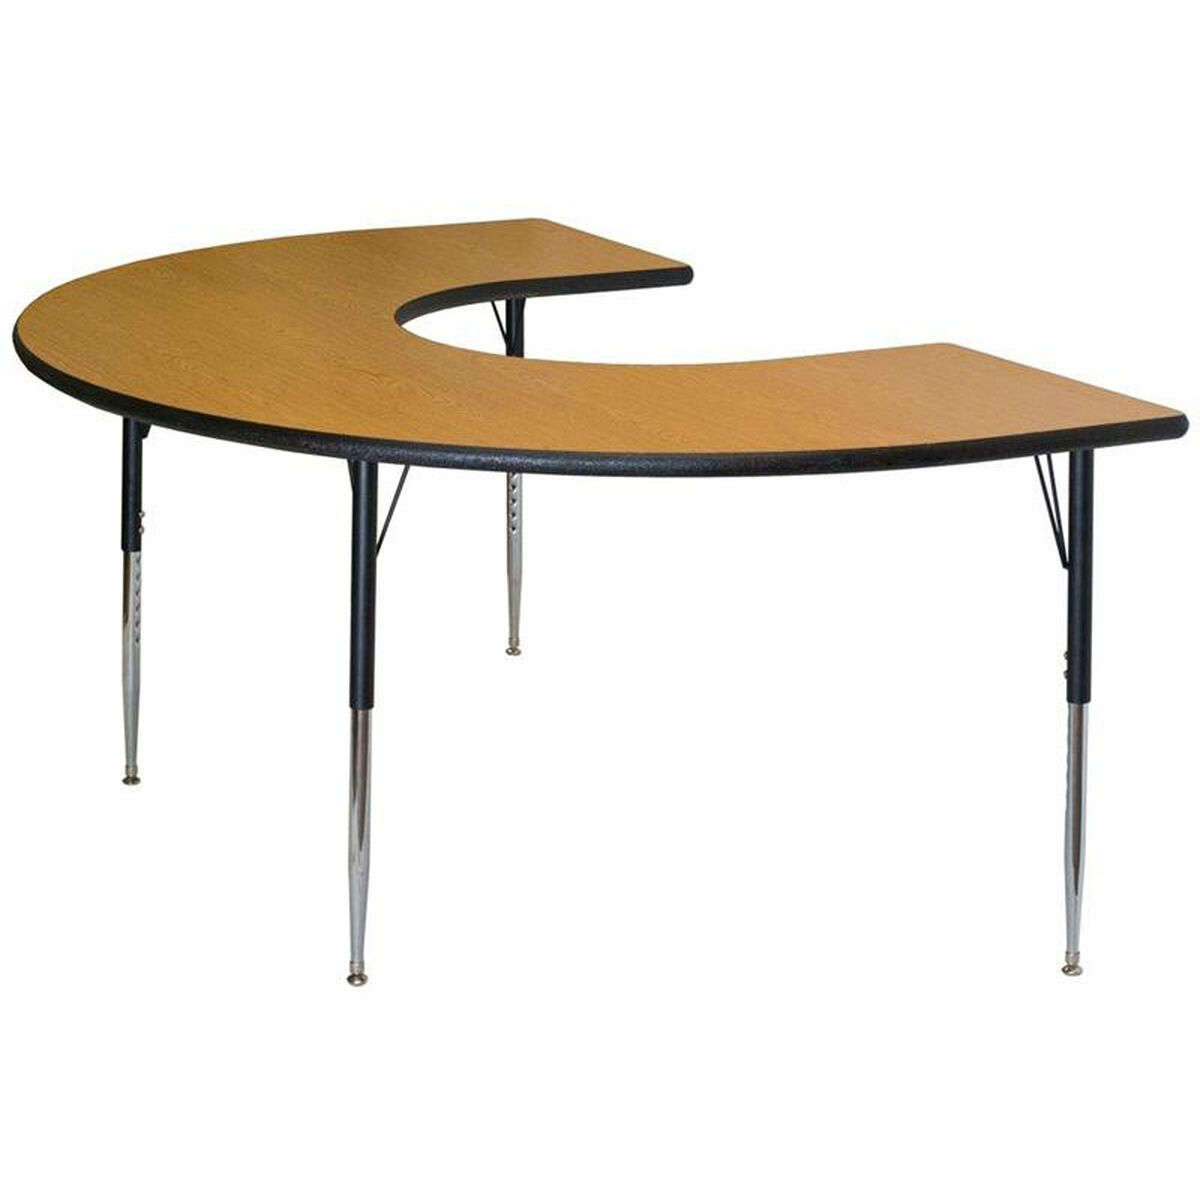 National school lines horseshoe shaped 226 activity table for Html table lines